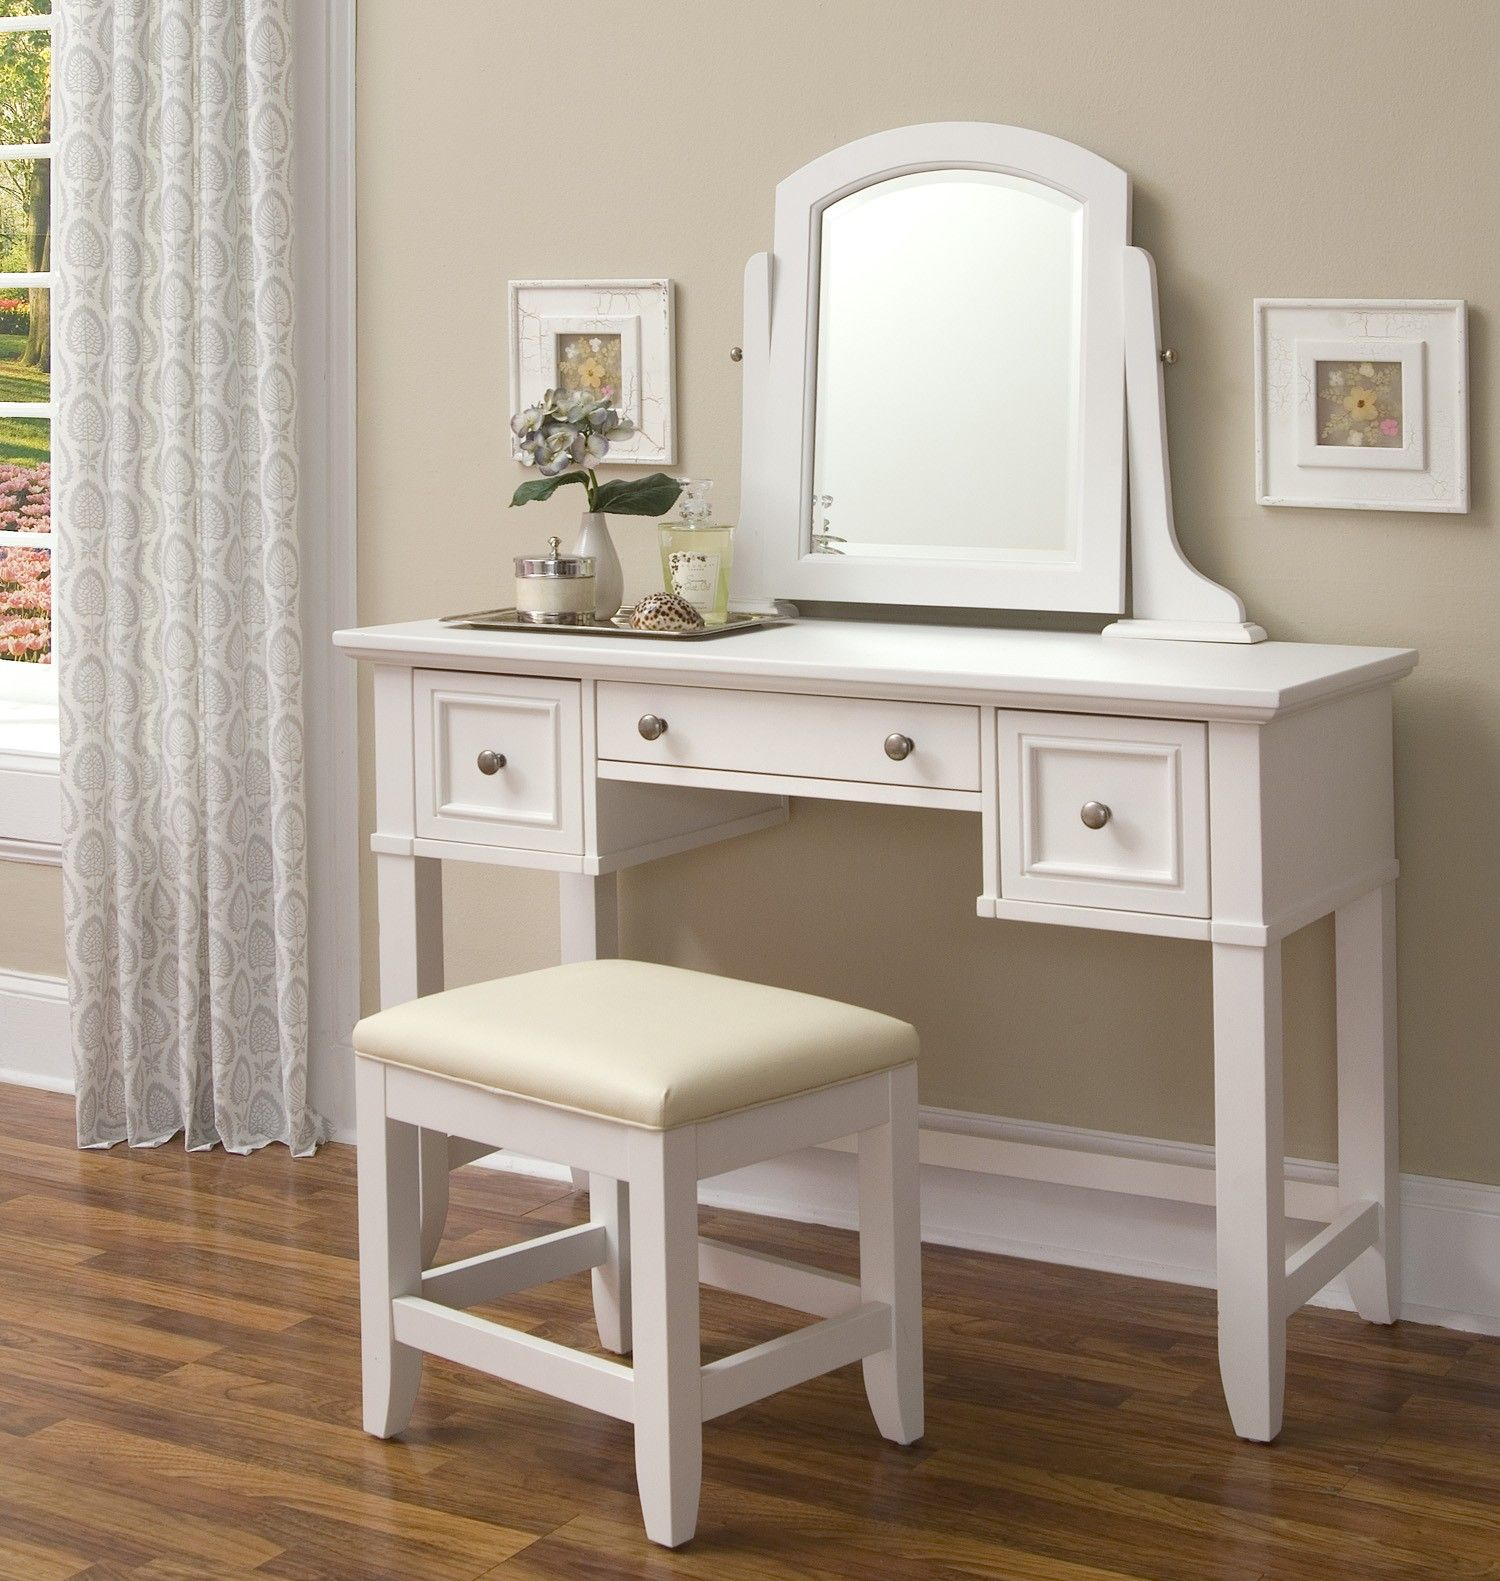 Cool White Makeup Vanity Table With Single Mirror And Three Drawer Storage  Feat Bench On Wooden